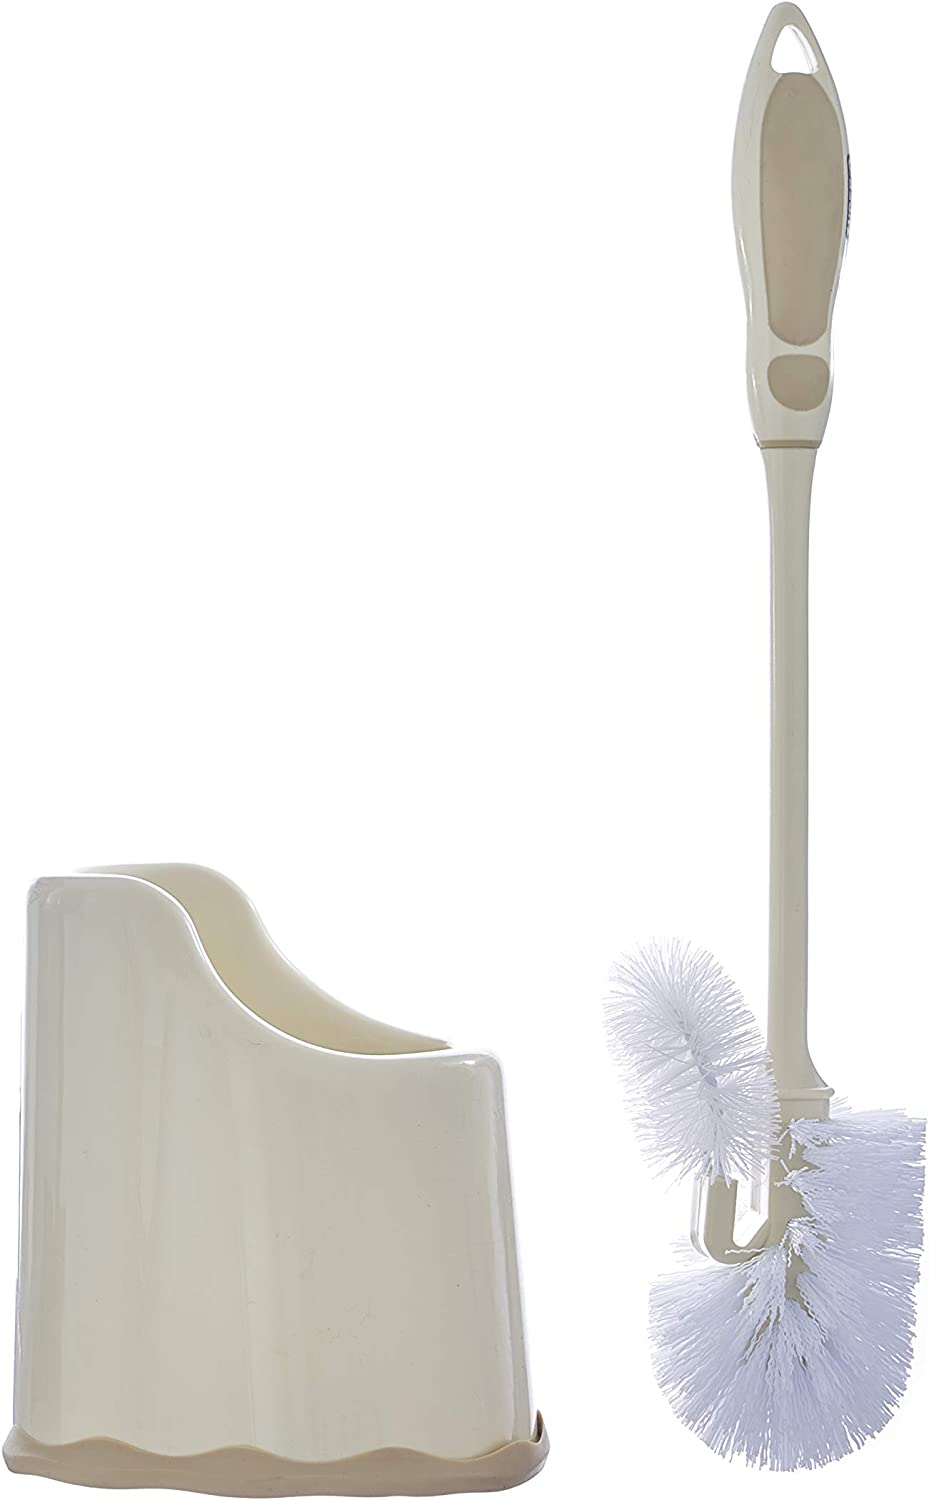 YING Silicone Toilet Brush with Holder with Wall Mounted Sets,Flexible Bathroom Deep Clean Brush Pink